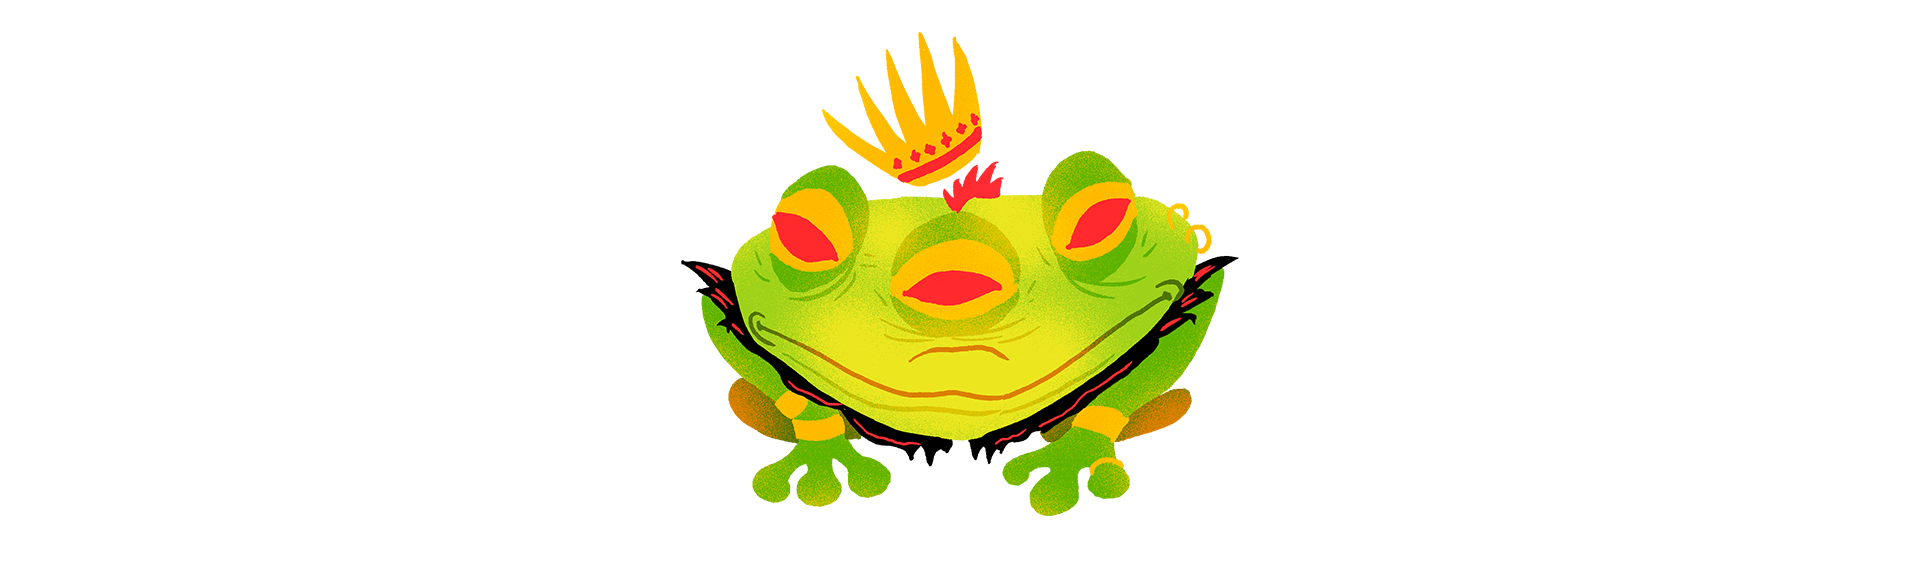 The Toad Queen